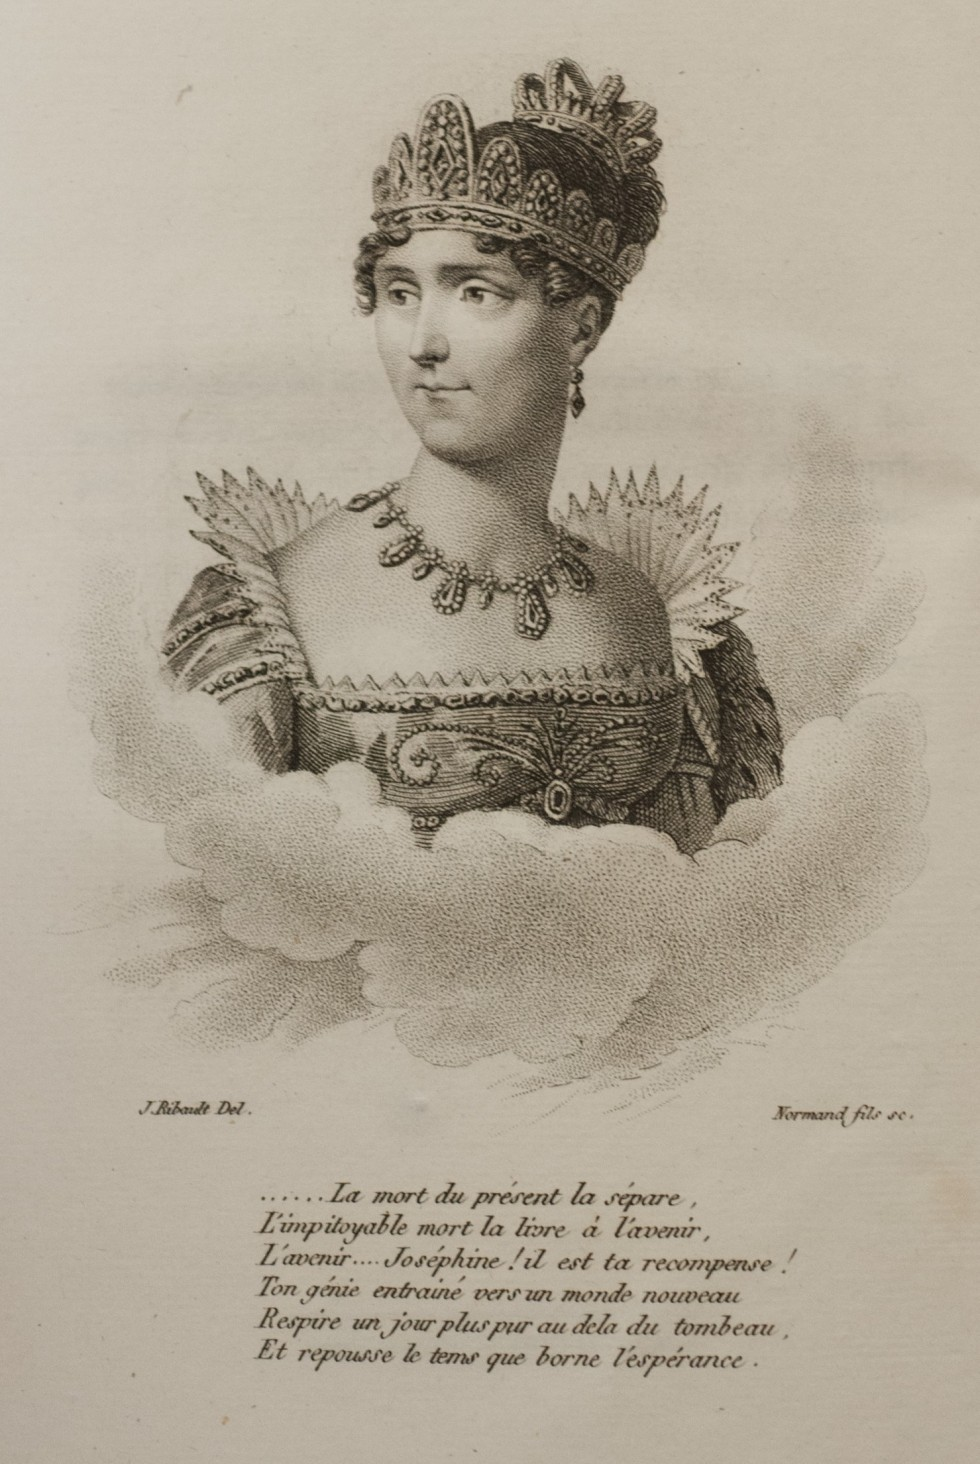 Empress Joséphine as she appears on the inside cover of Lenormand's 'Mémoires de l'Impératrice Joséphine'